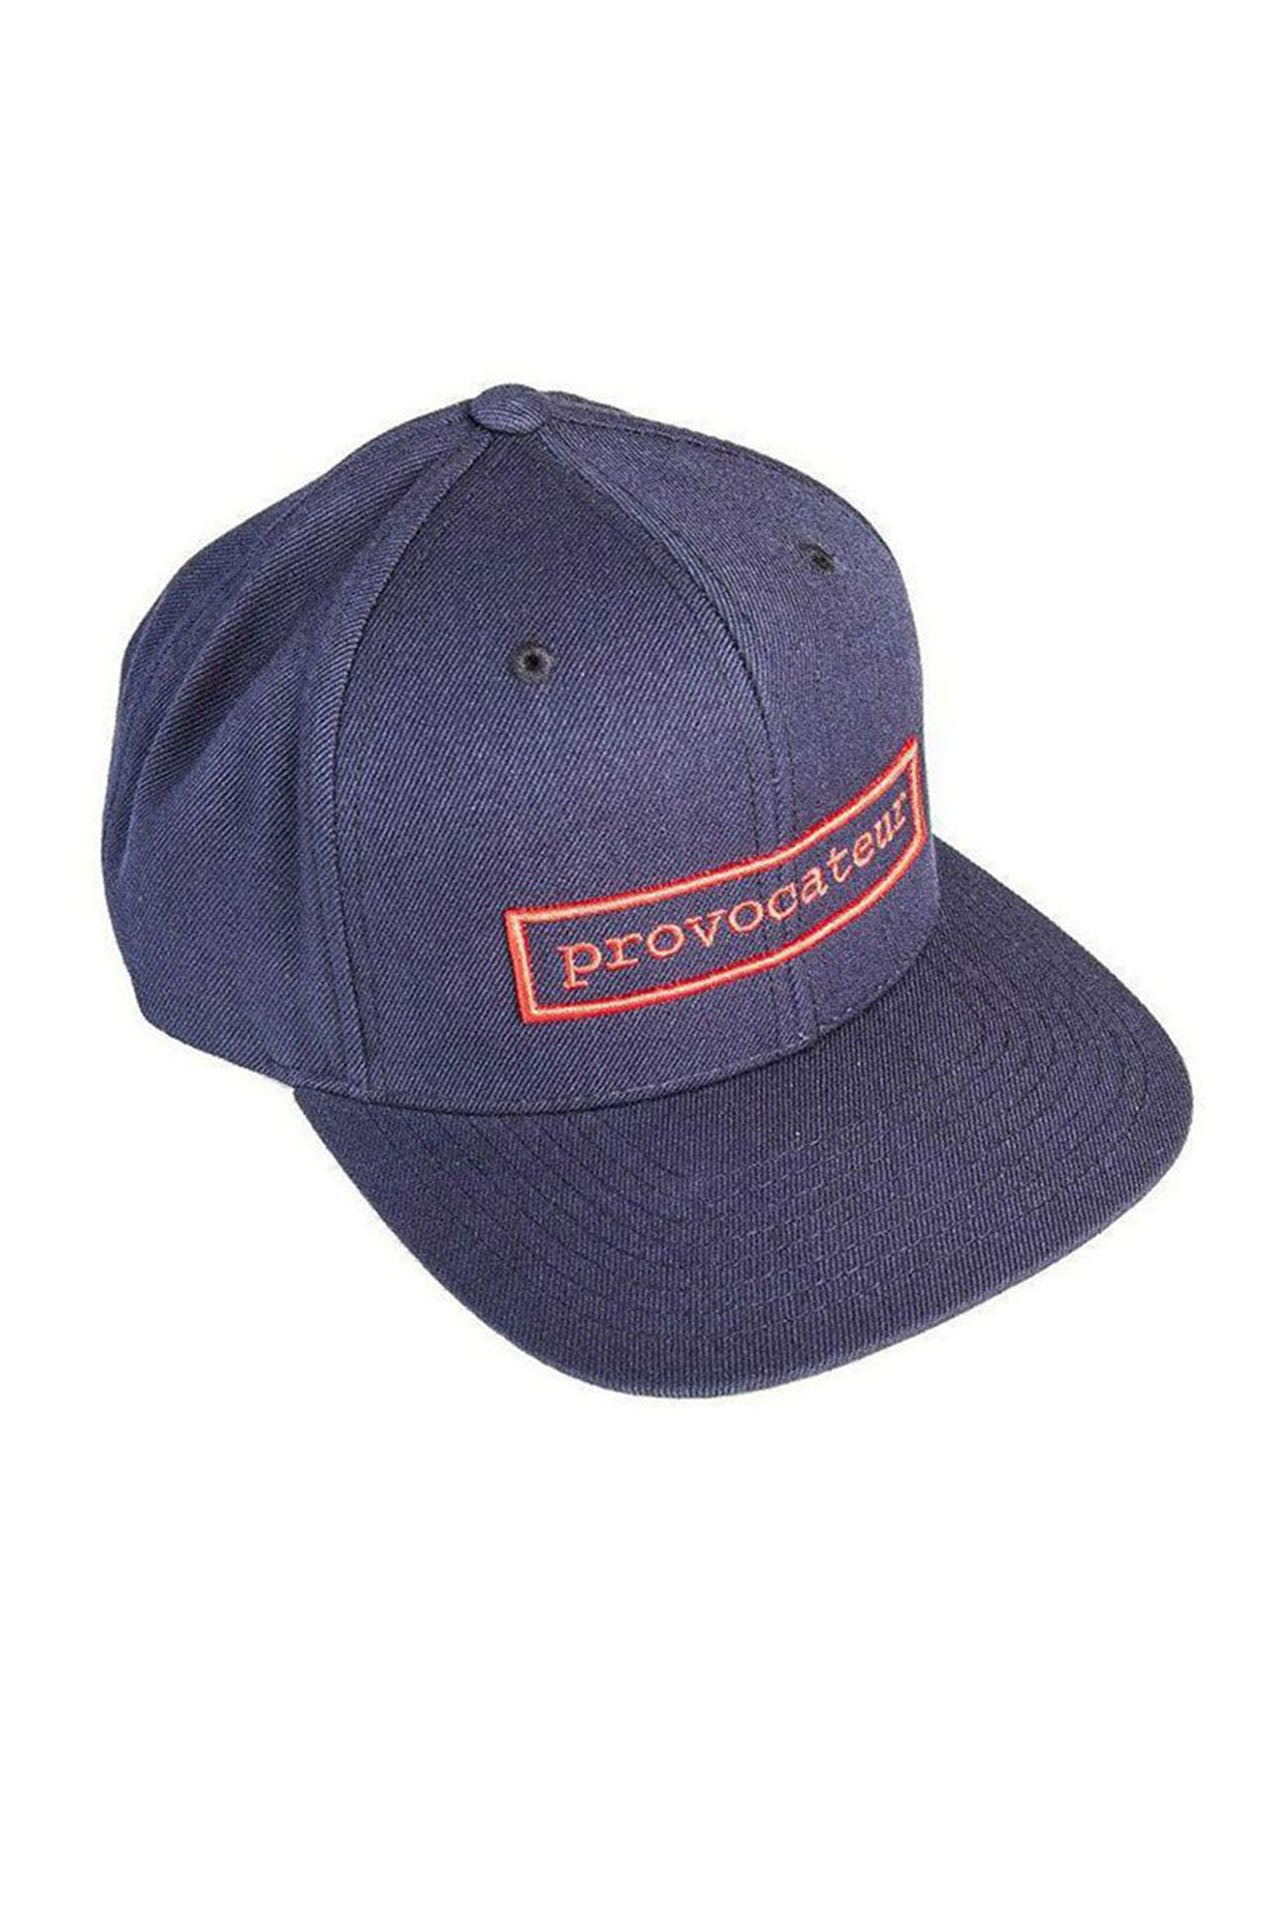 the provocateur soundbox snapback hat